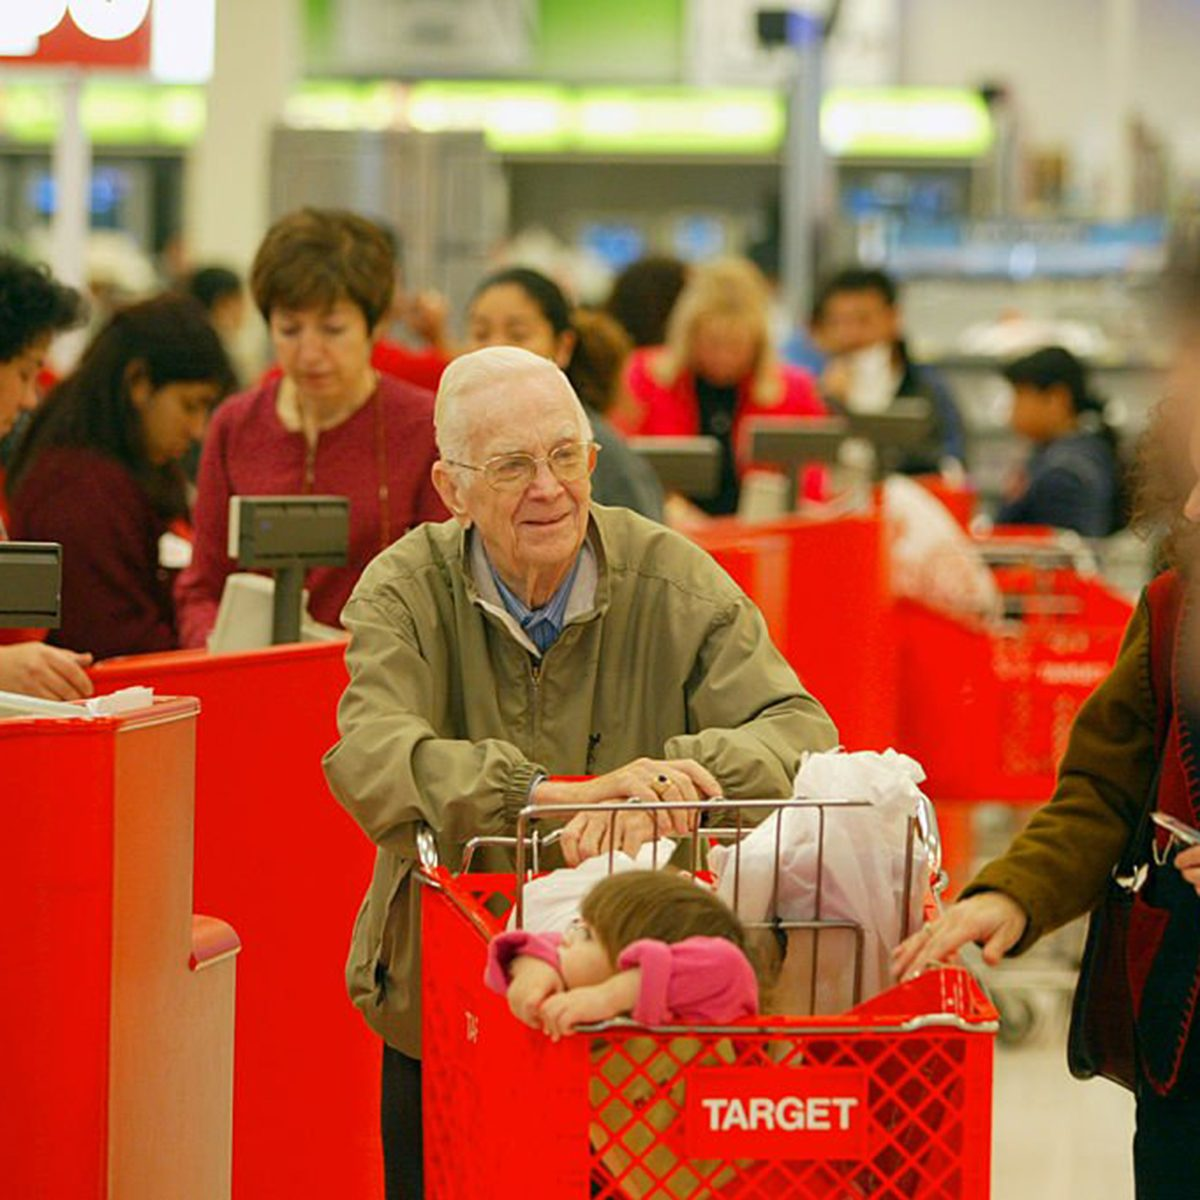 Old man leaving Target checkouts